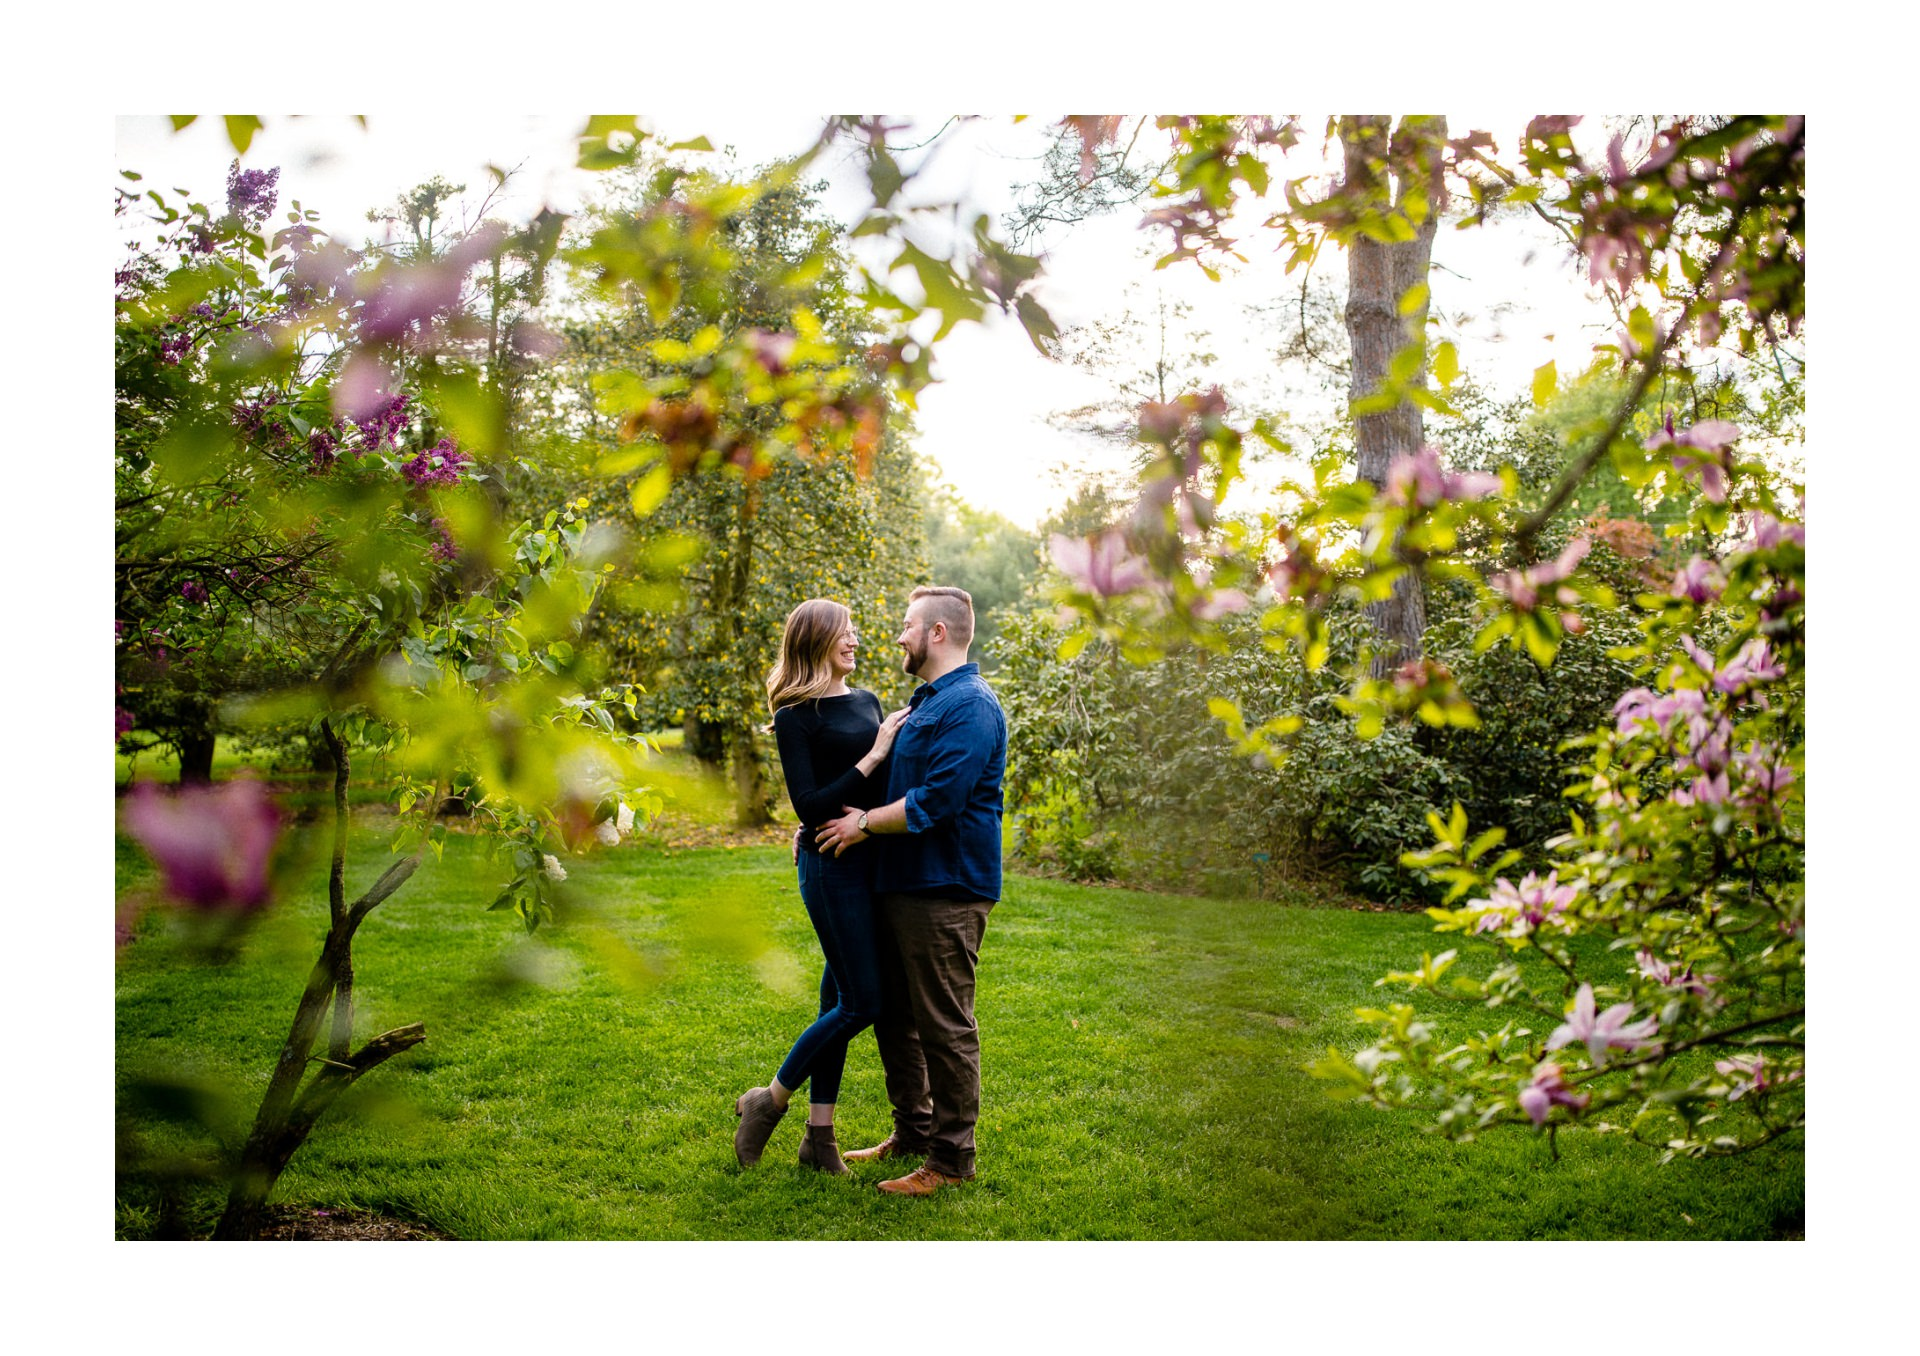 Spring Cleveland Botanical Gardens Engagement Photos 11.jpg